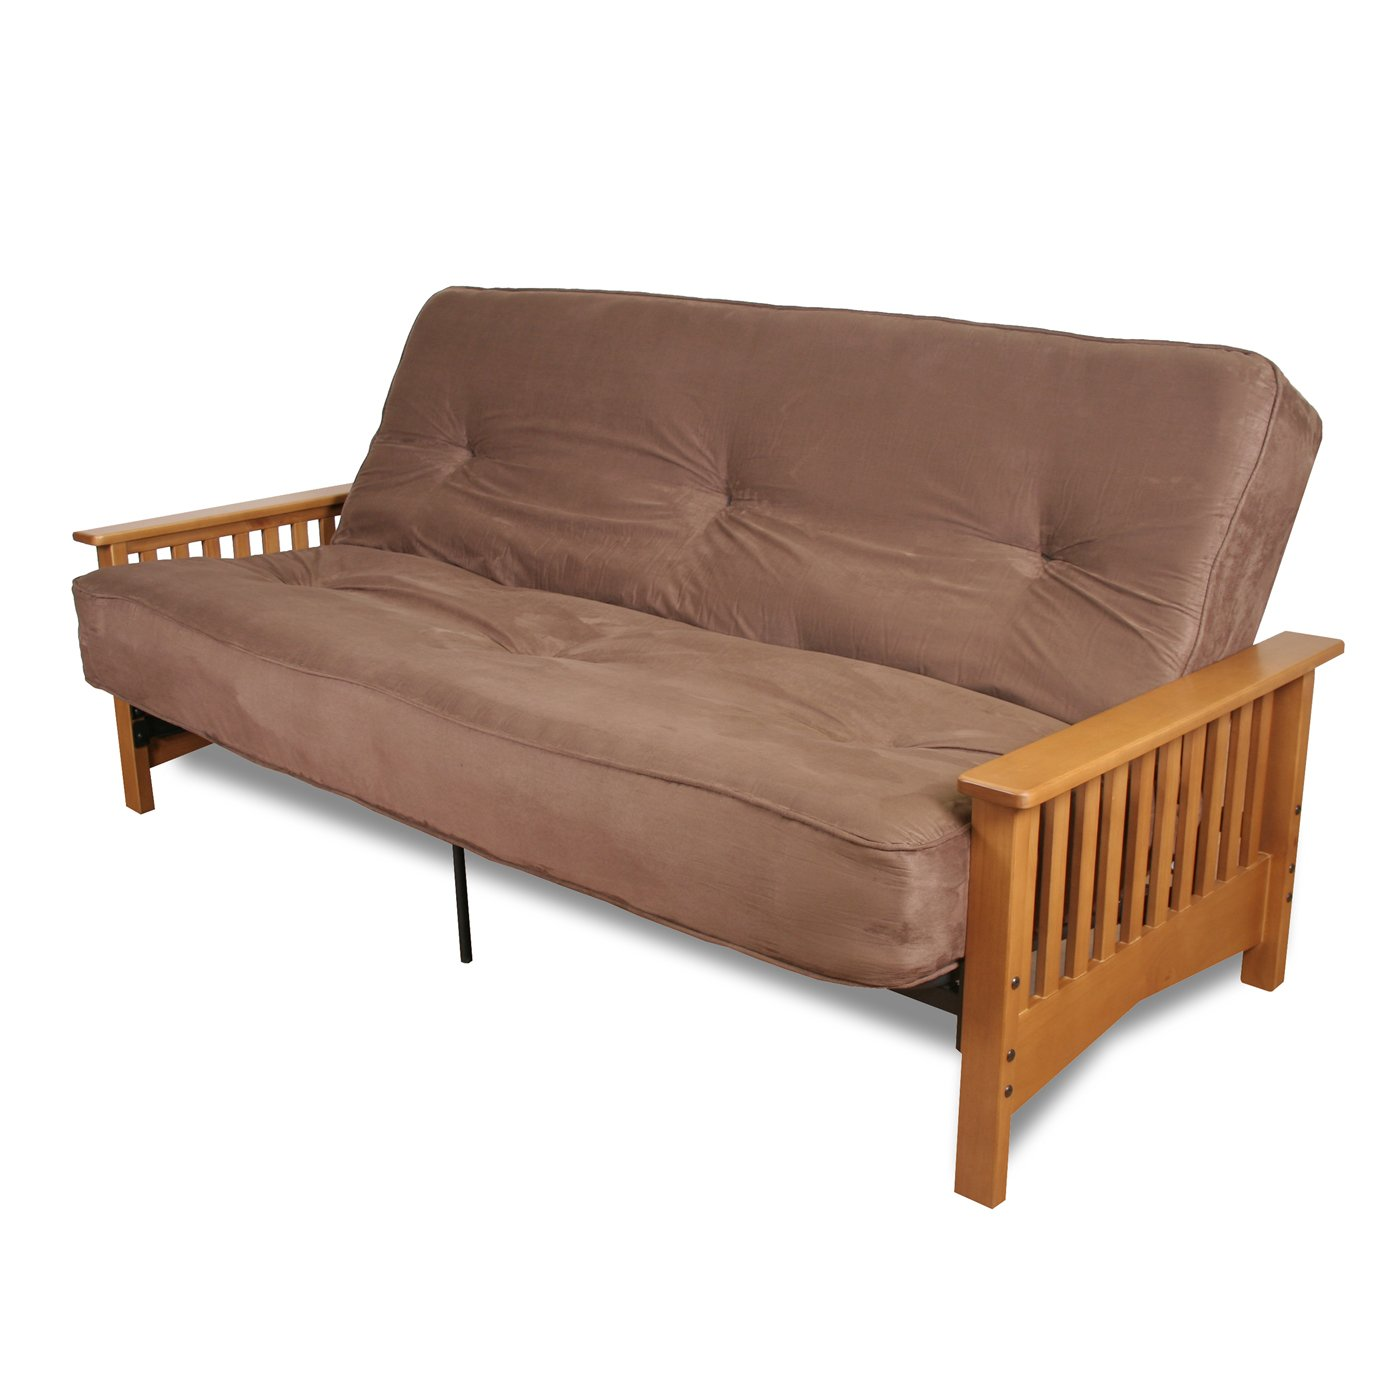 cheap futons in brown with wooden legs and arms for home furniture ideas